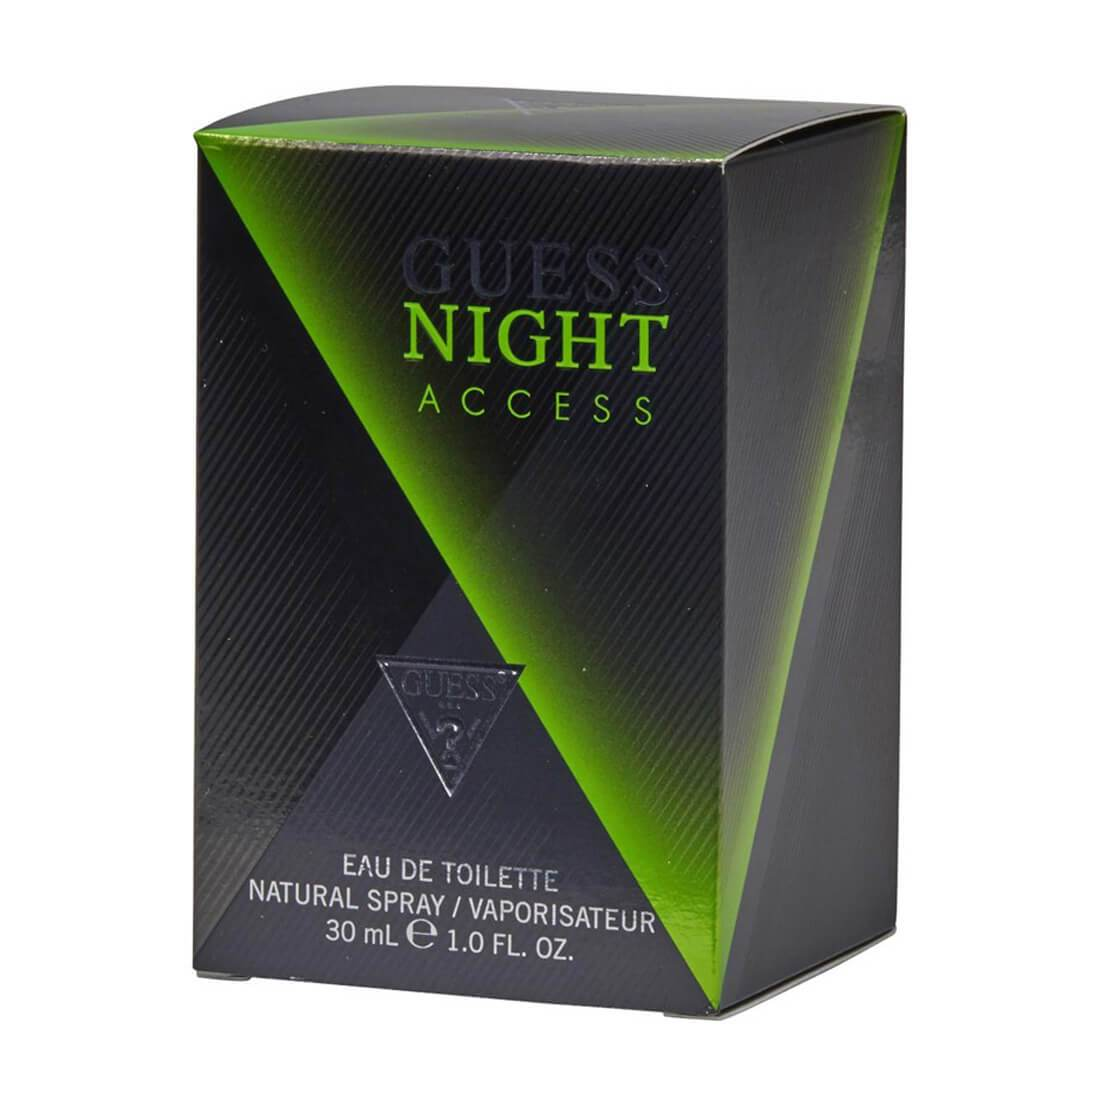 Guess Night Access Eau De Toilette For Men - 30ml